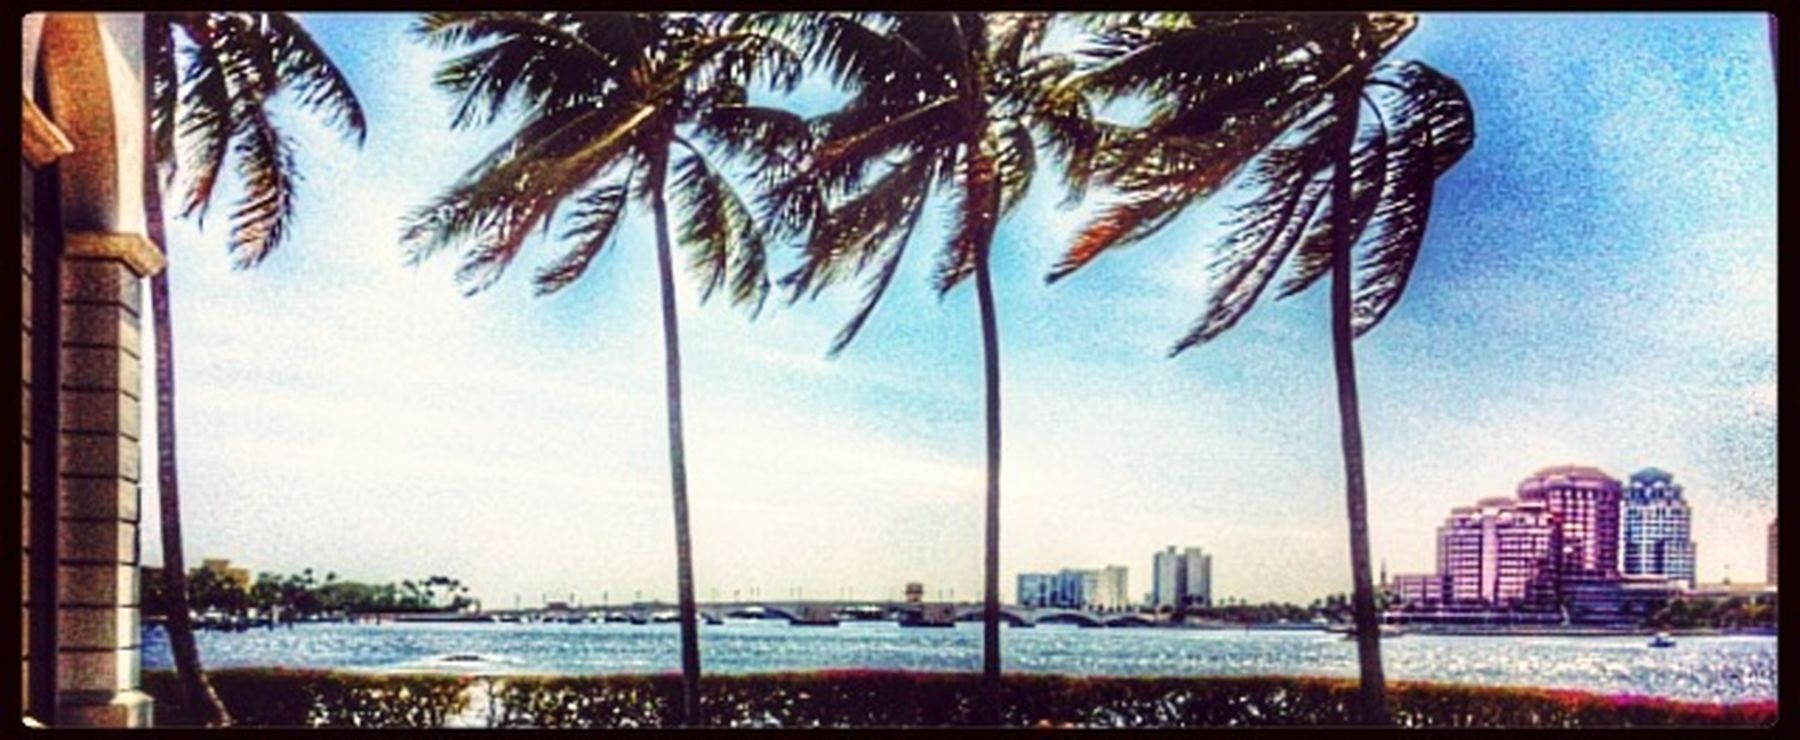 My Town West Palm Beach Florida Palm Trees i love my home town its so beautiful. I love loving where others vacation!